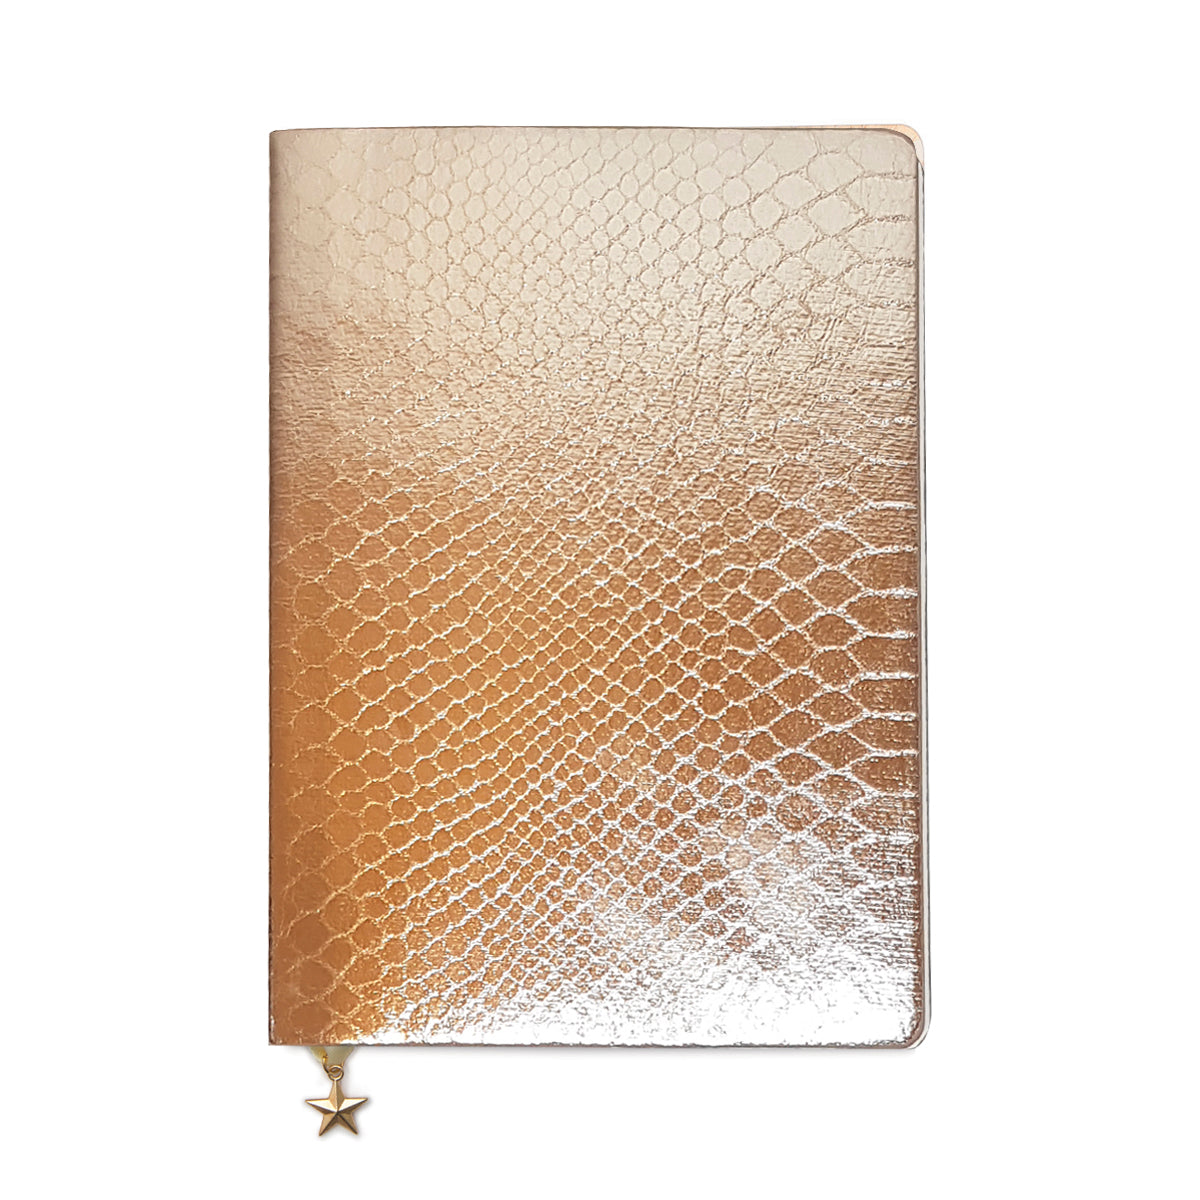 ALL THAT GLITTERS A5 RULED NOTEBOOK - ROSE COPPER CROC